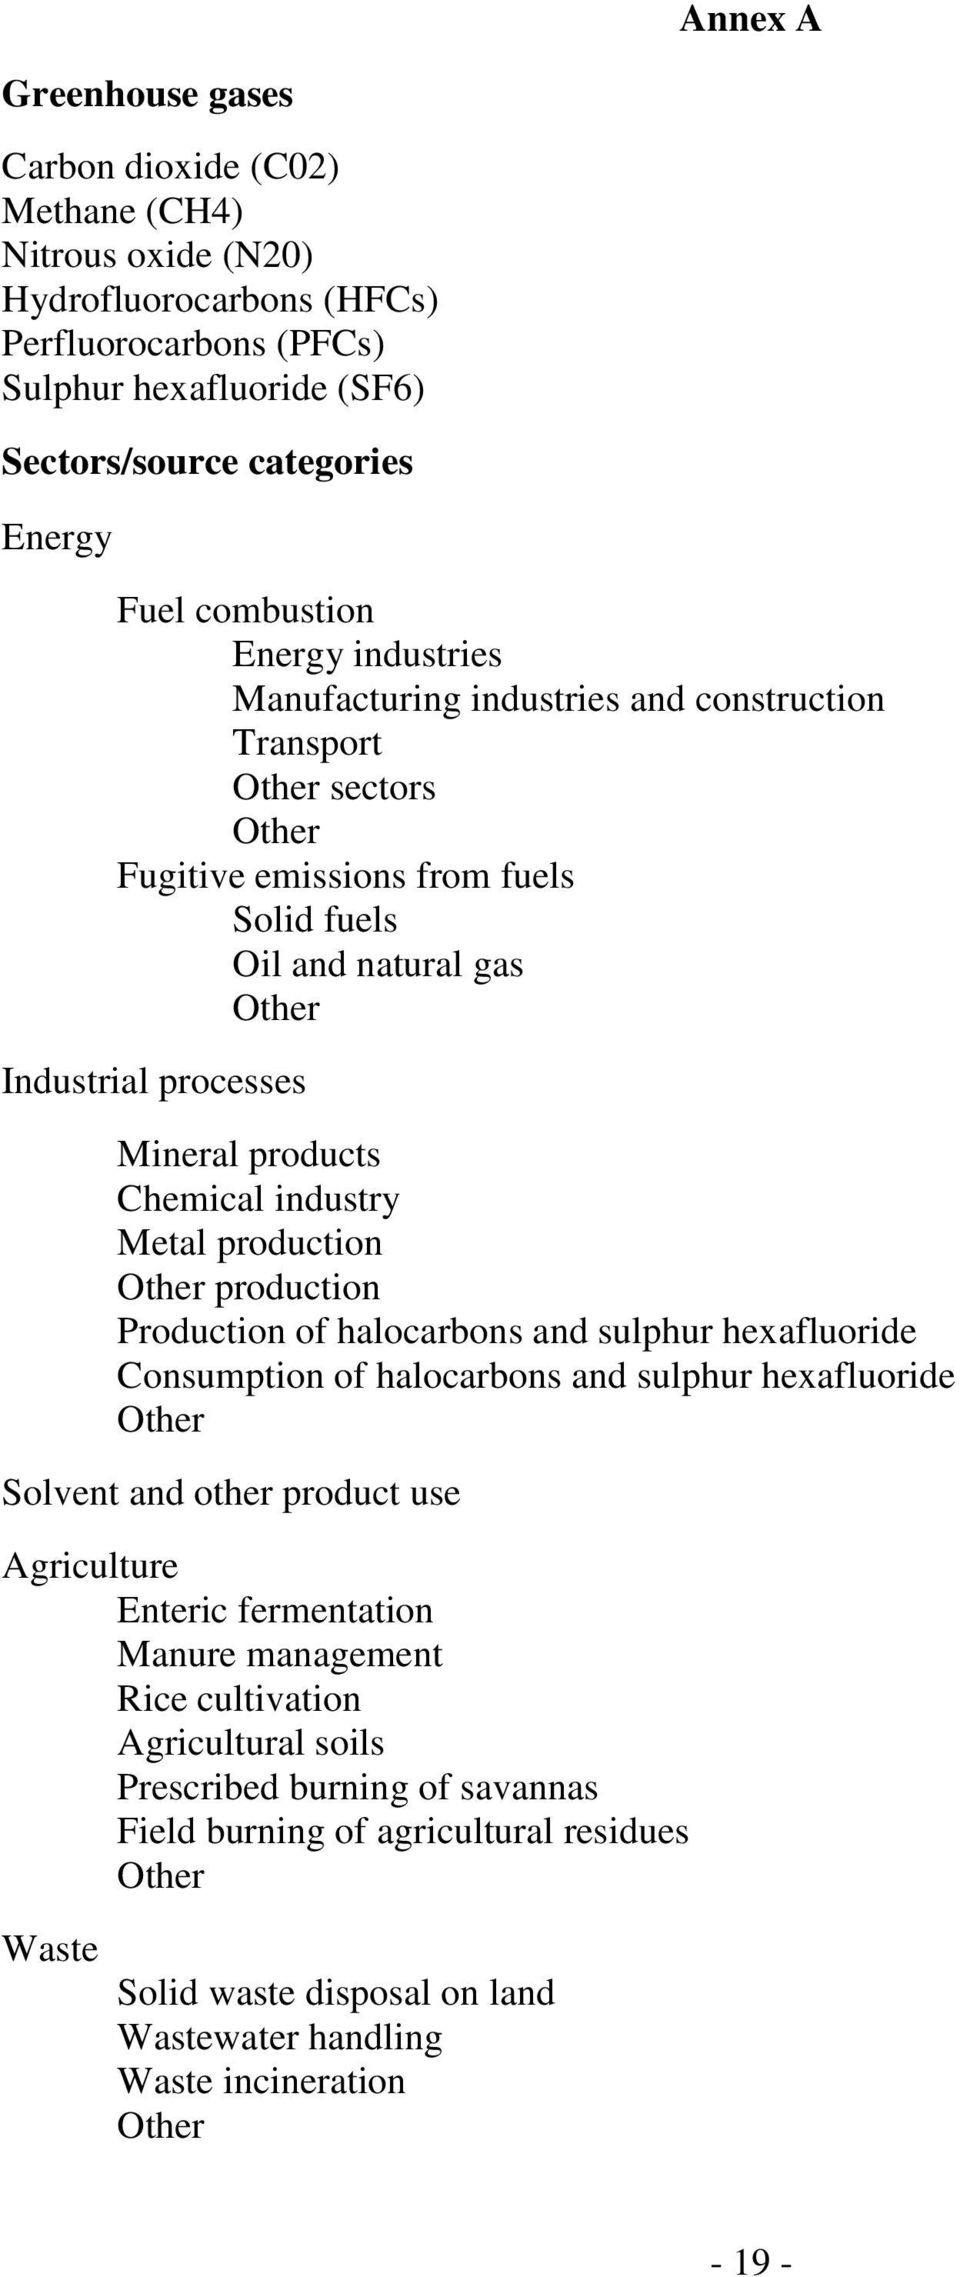 products Chemical industry Metal production Other production Production of halocarbons and sulphur hexafluoride Consumption of halocarbons and sulphur hexafluoride Other Solvent and other product use